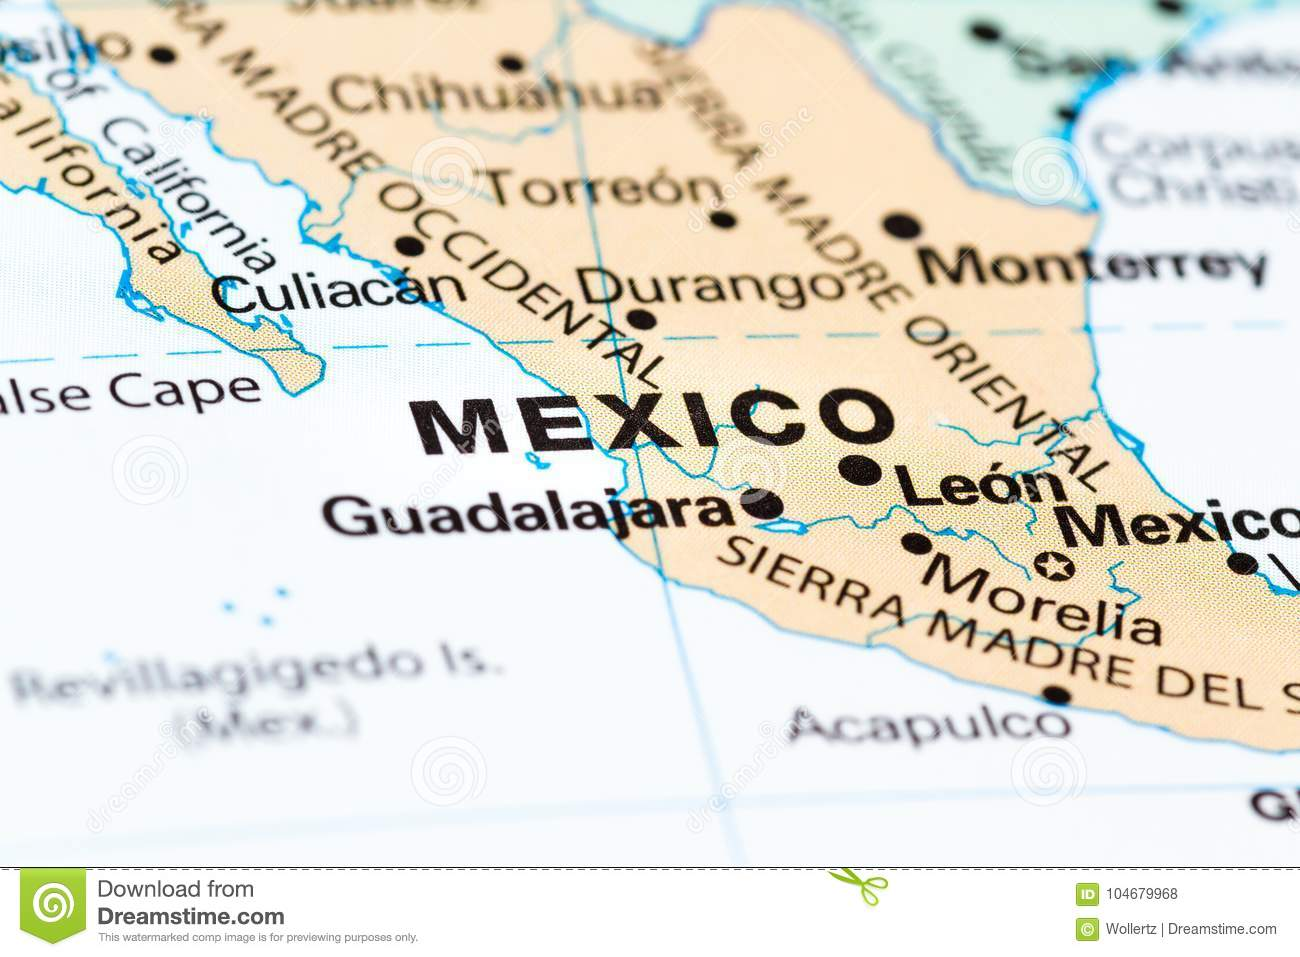 Mexico City on a map stock photo. Image of focus, discover ...